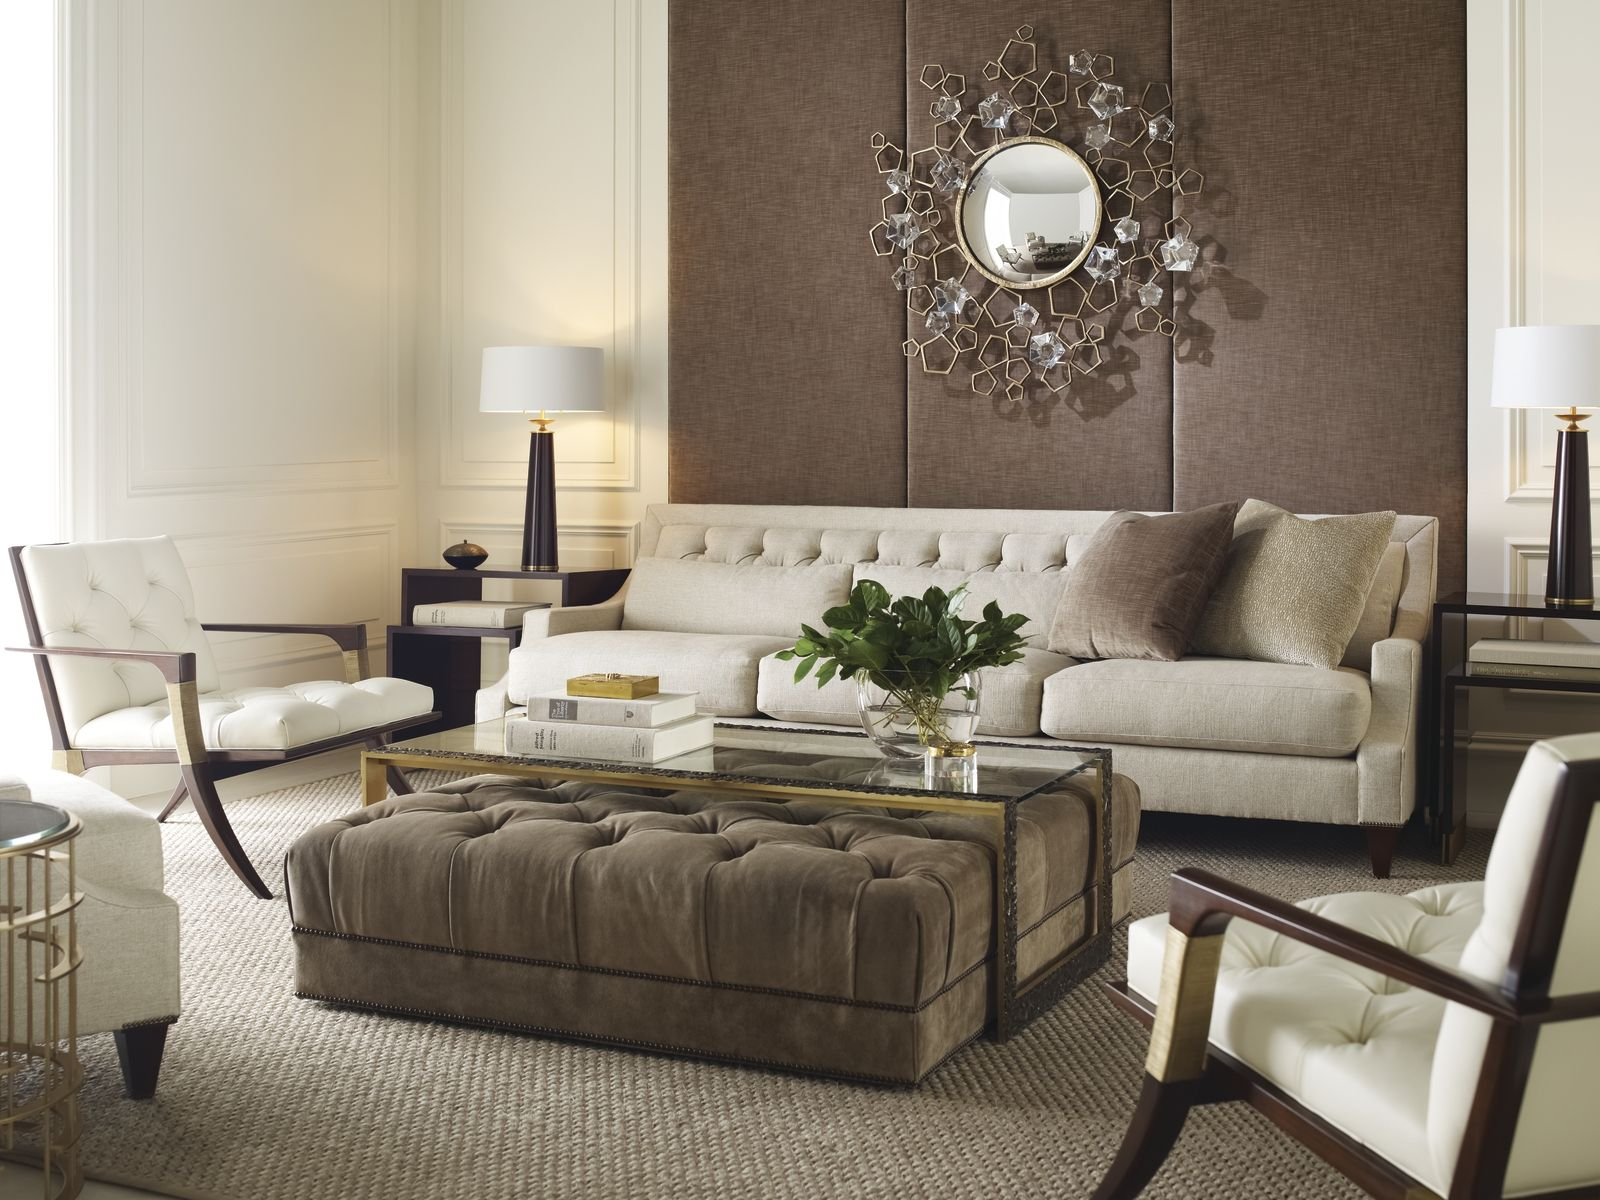 Thomas Pheasant Collection: Http://www.bakerfurniture.com /baker/1_1_1_0_coll_tph.jsp